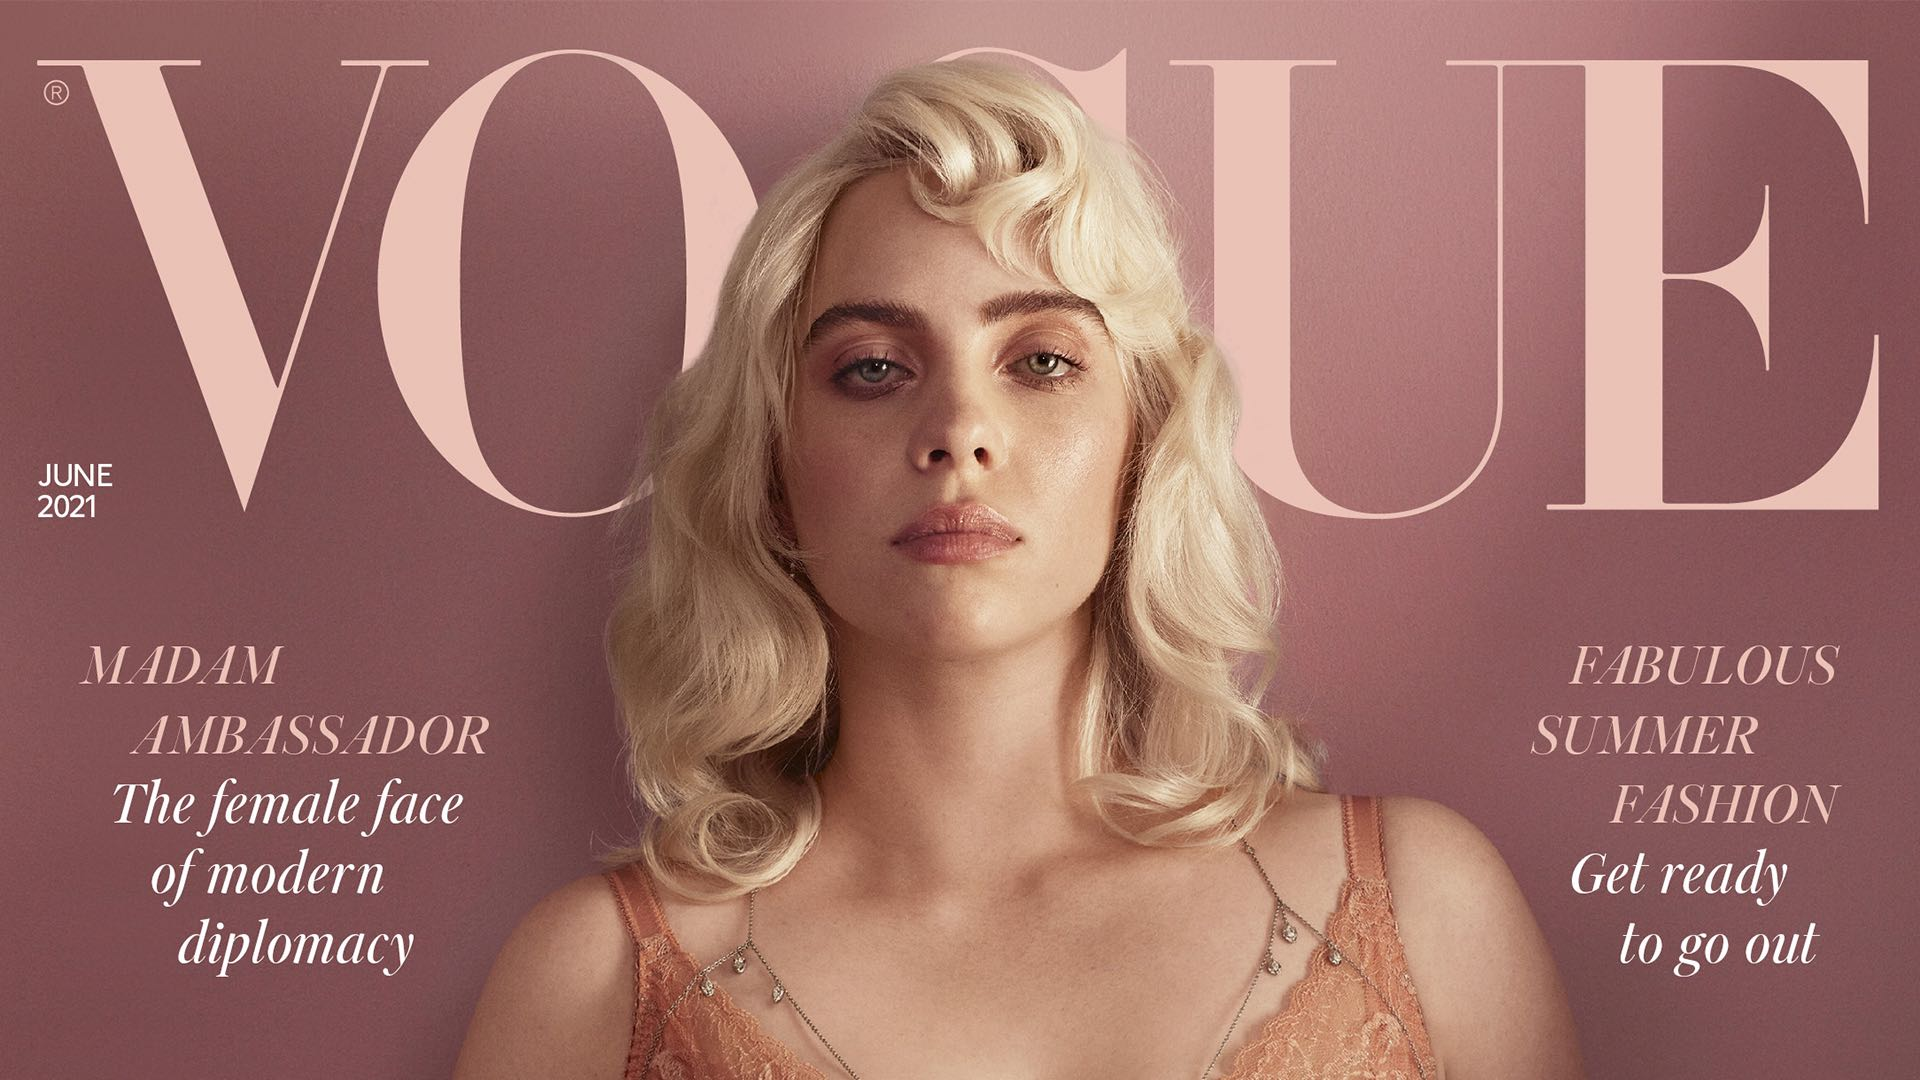 Billie Eilish rompe récord en Instagram por segunda vez con portada de British Vogue